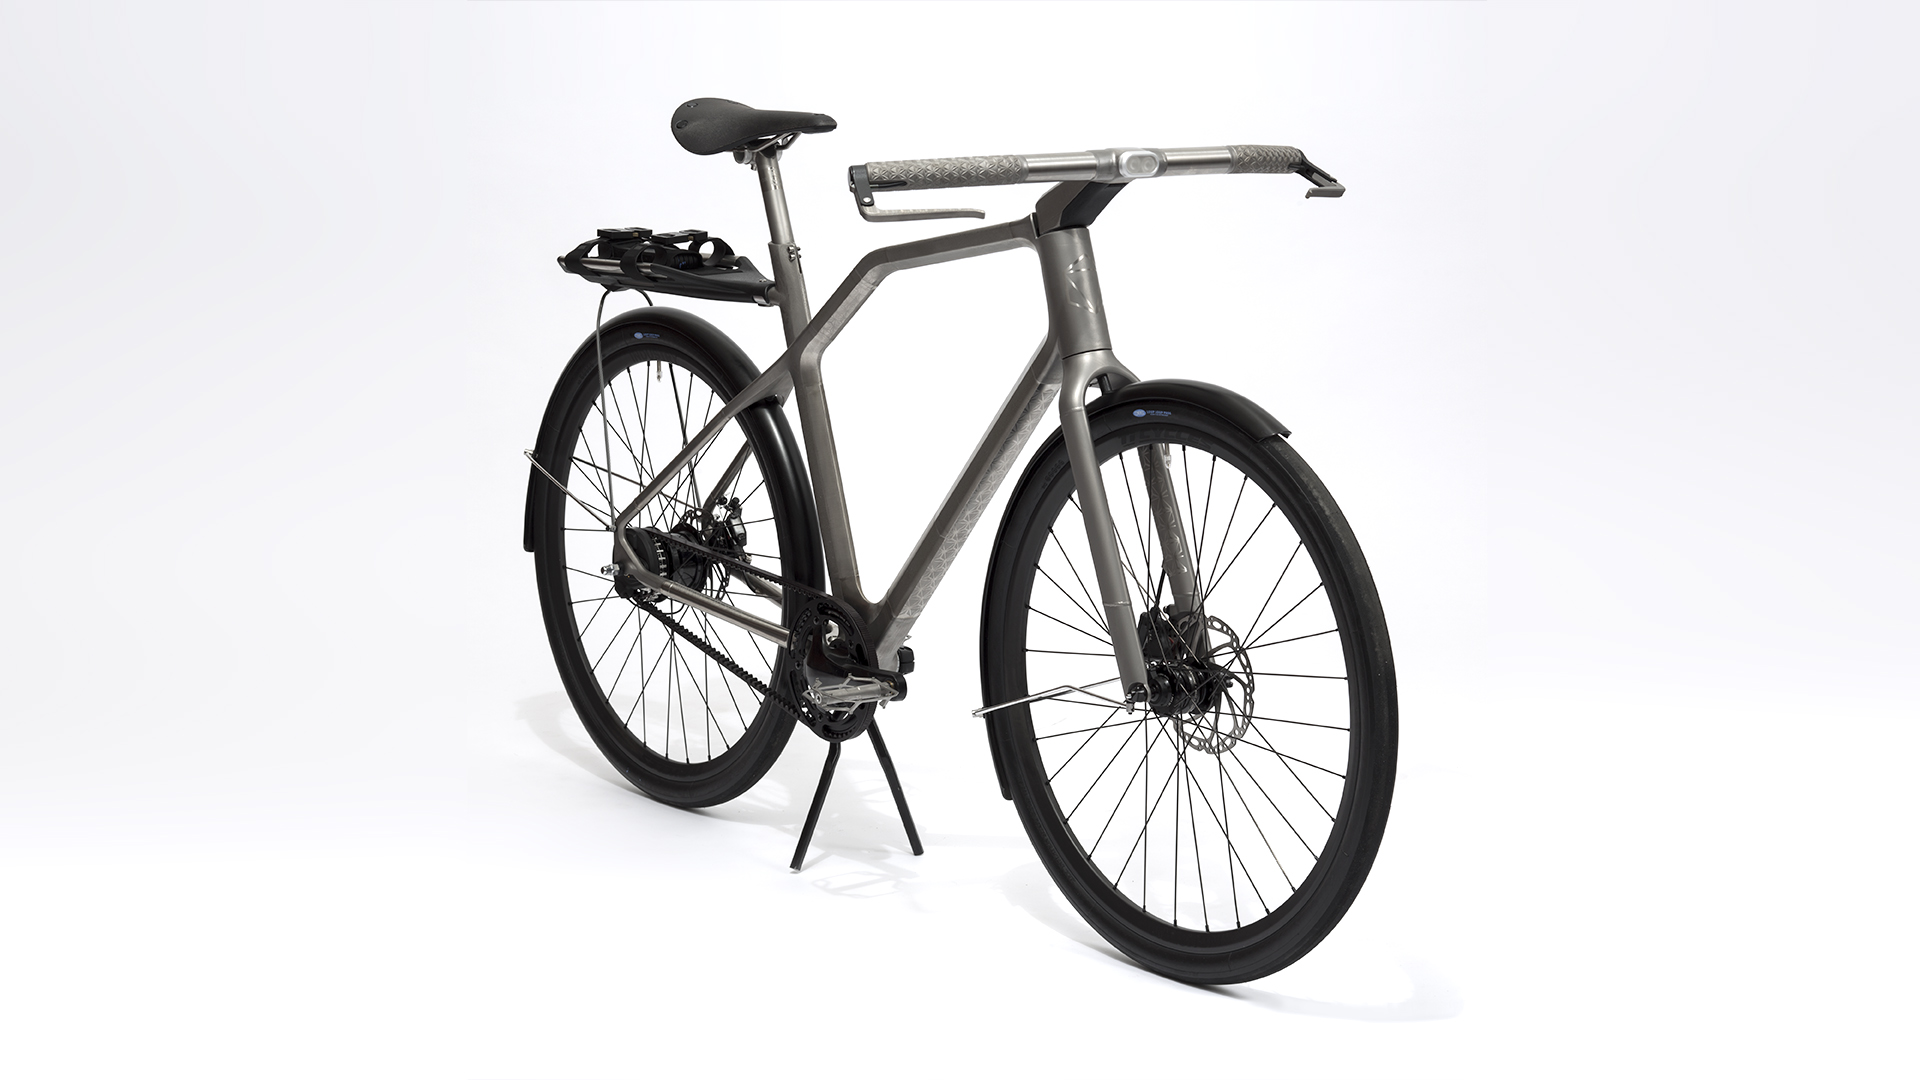 industry-ti-cycles-solid-bike-product-concept-4